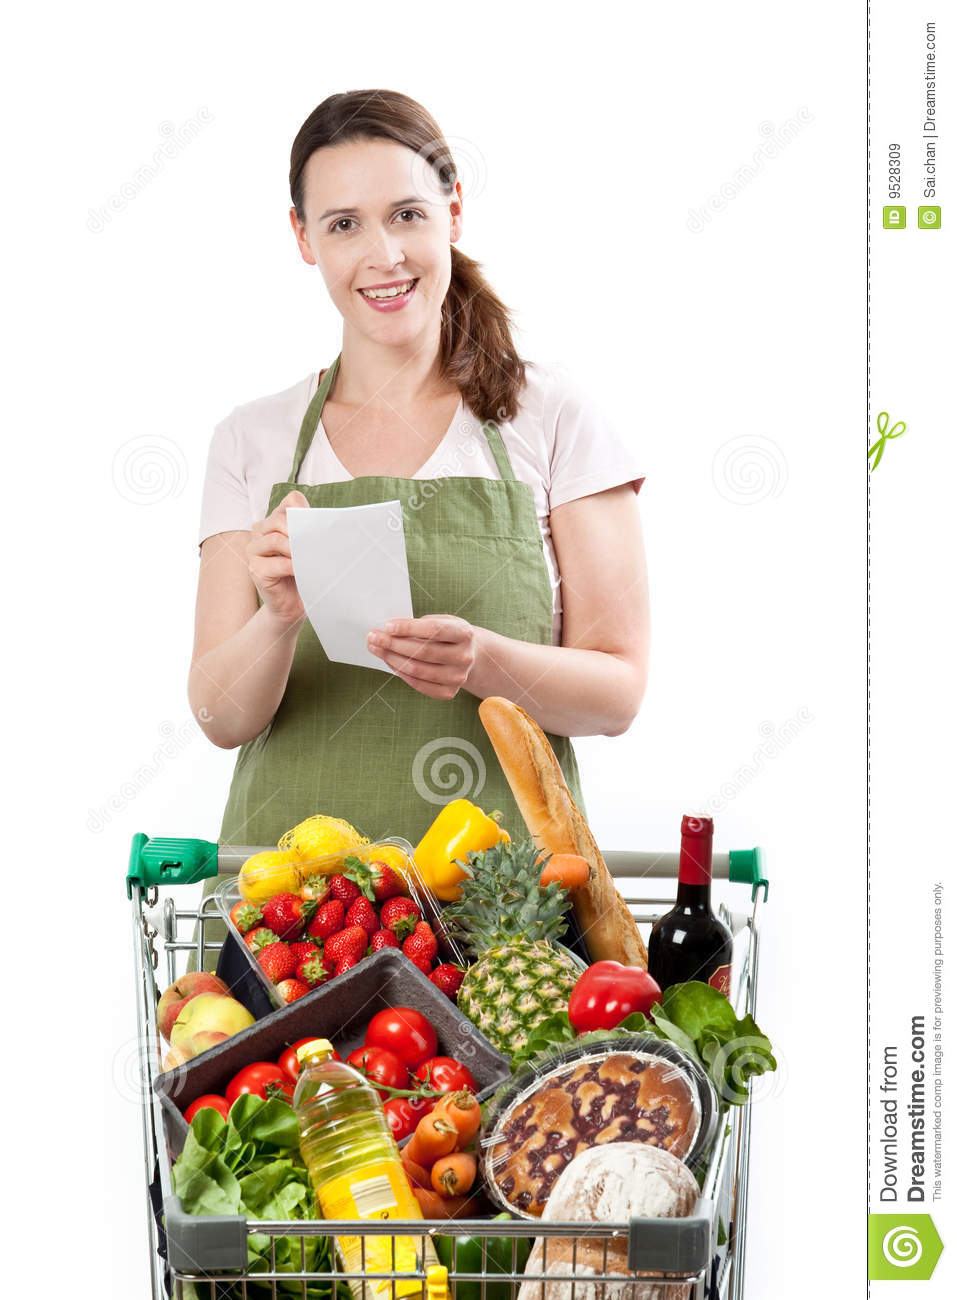 Royalty Free Stock Images Friendly grocery store assistant Image 9528309